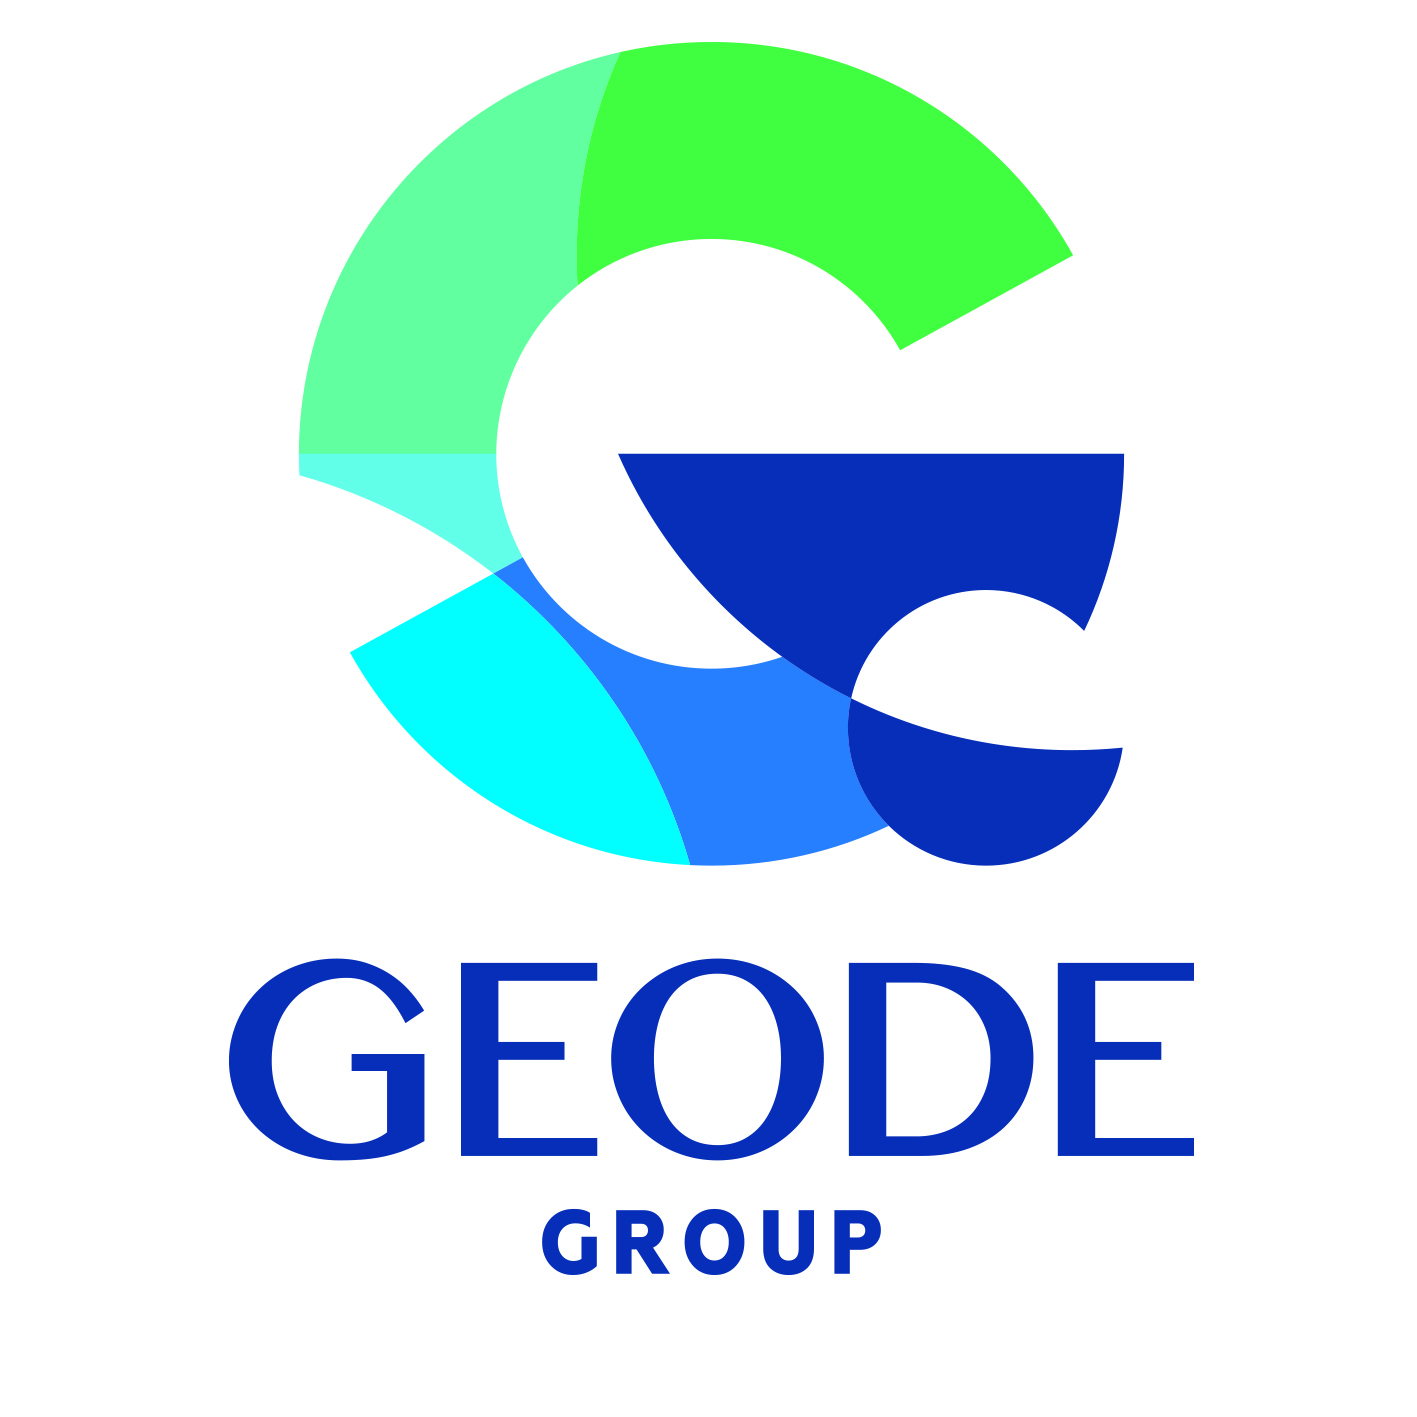 Logo GEODE GROUP